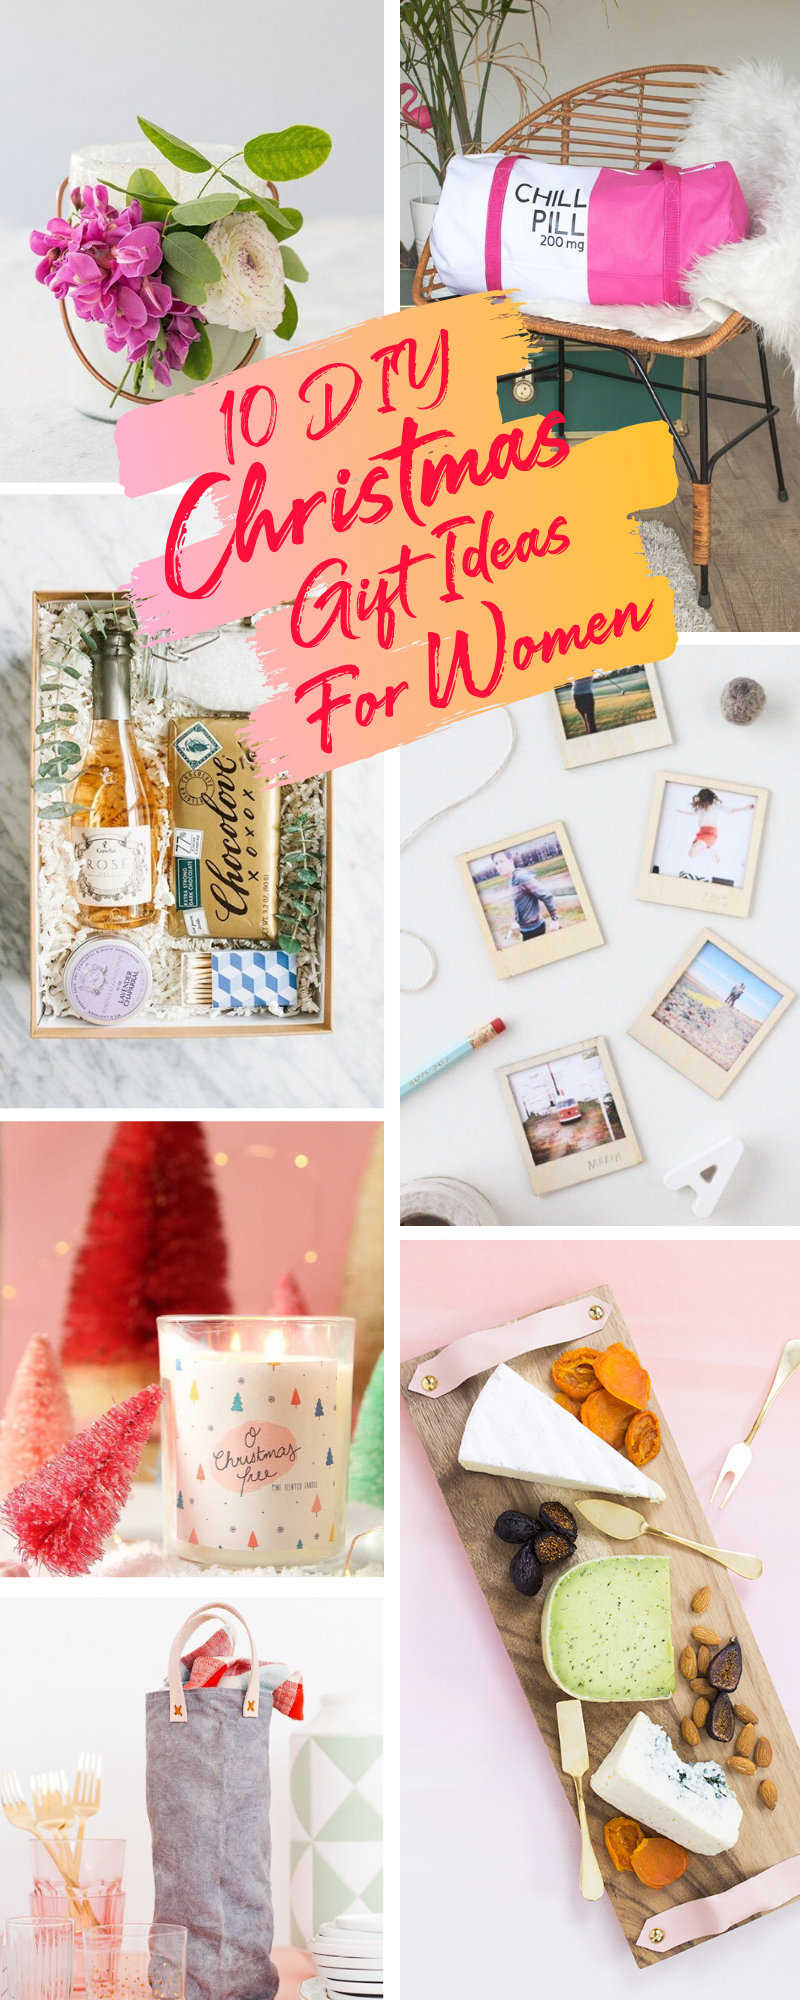 10 DIY Christmas Gifts To Make For The Women In Your Life